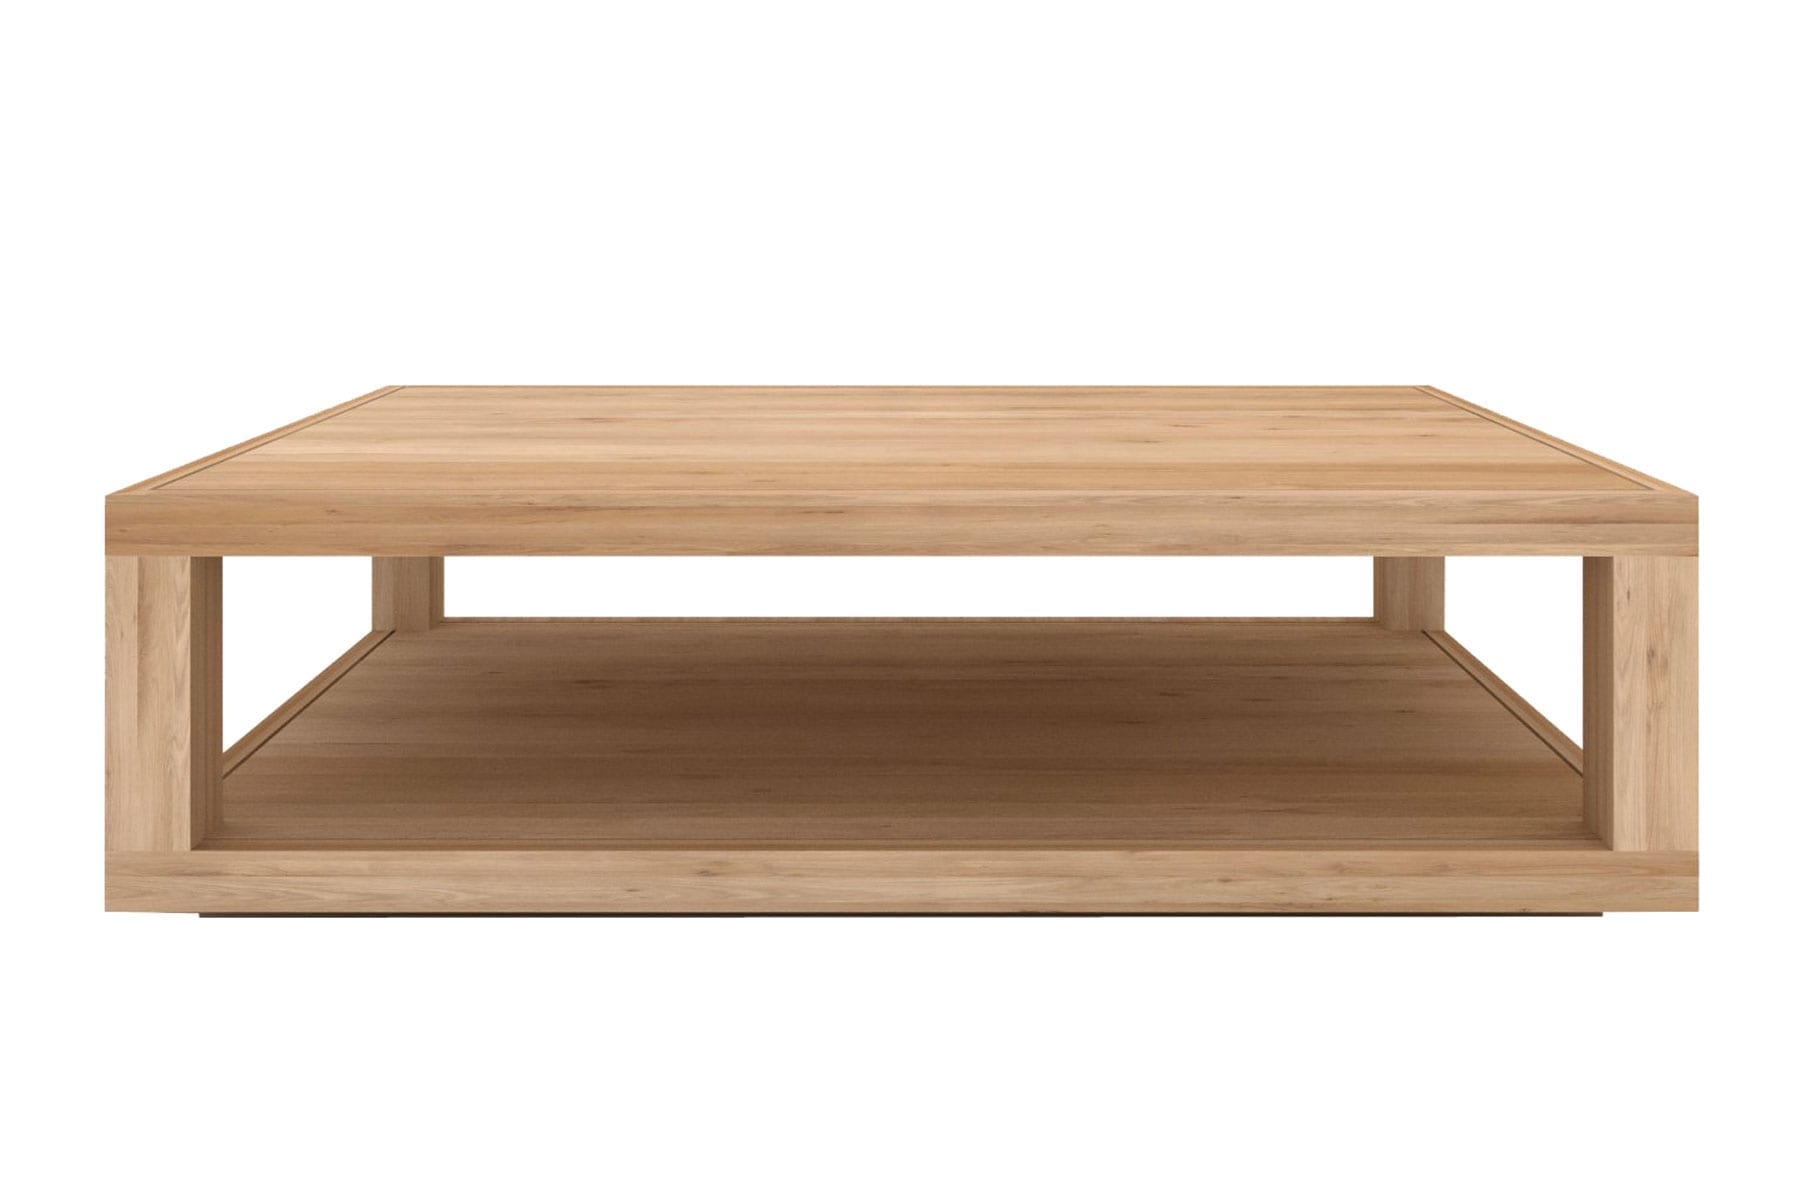 » Ethnicraft Duplex Coffee Table McKenzie & Willis -> Table Basse Cube Bois